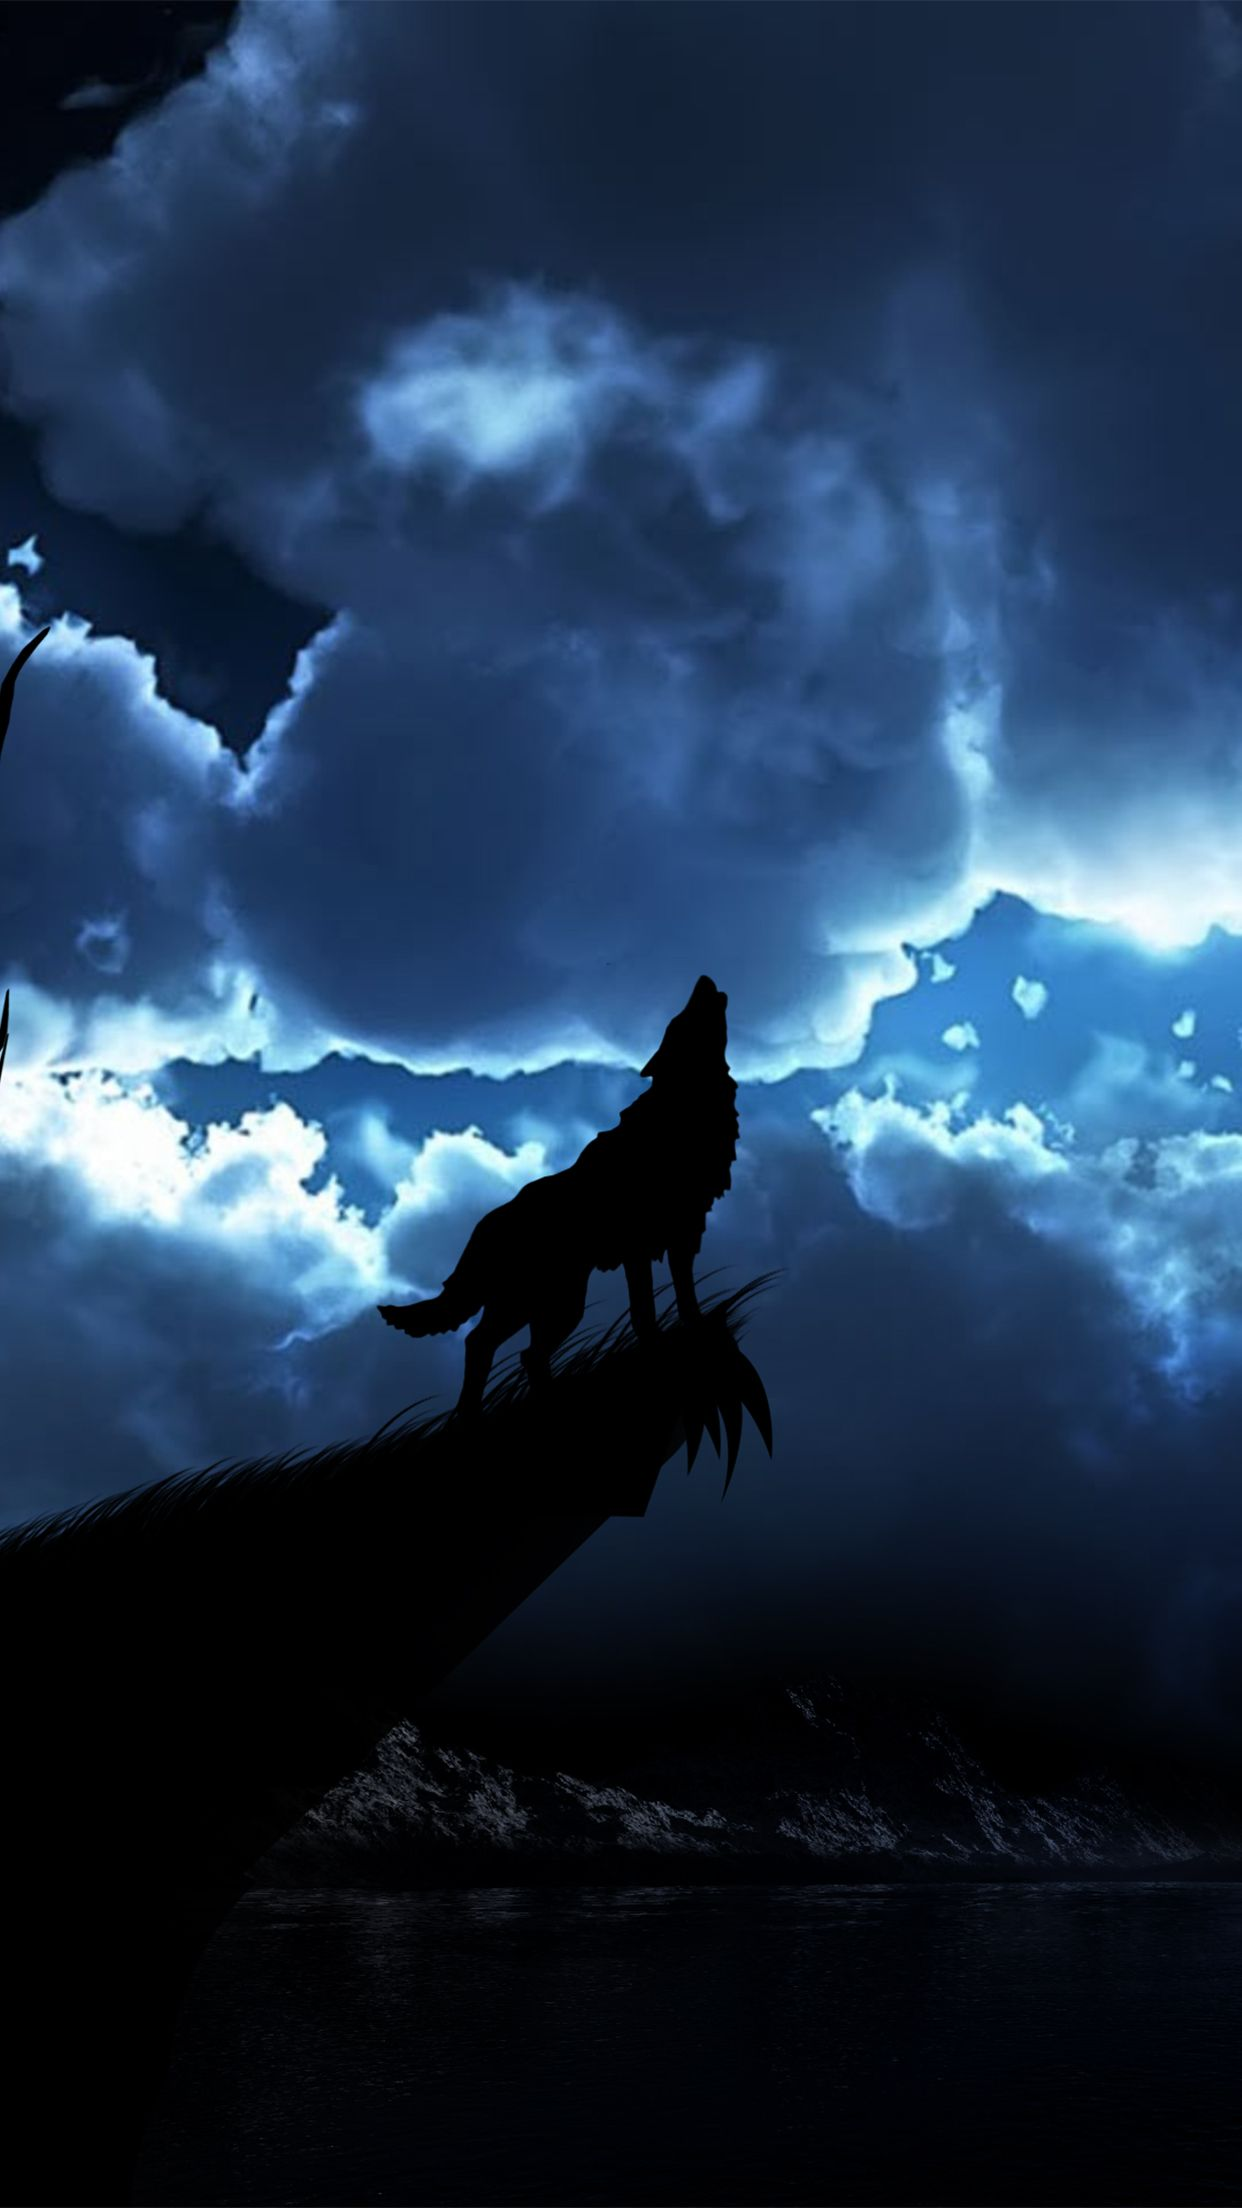 1242x2208 Wolf Night Wallpaper for iPhone X, 8, 7, 6 - Free Download on ...